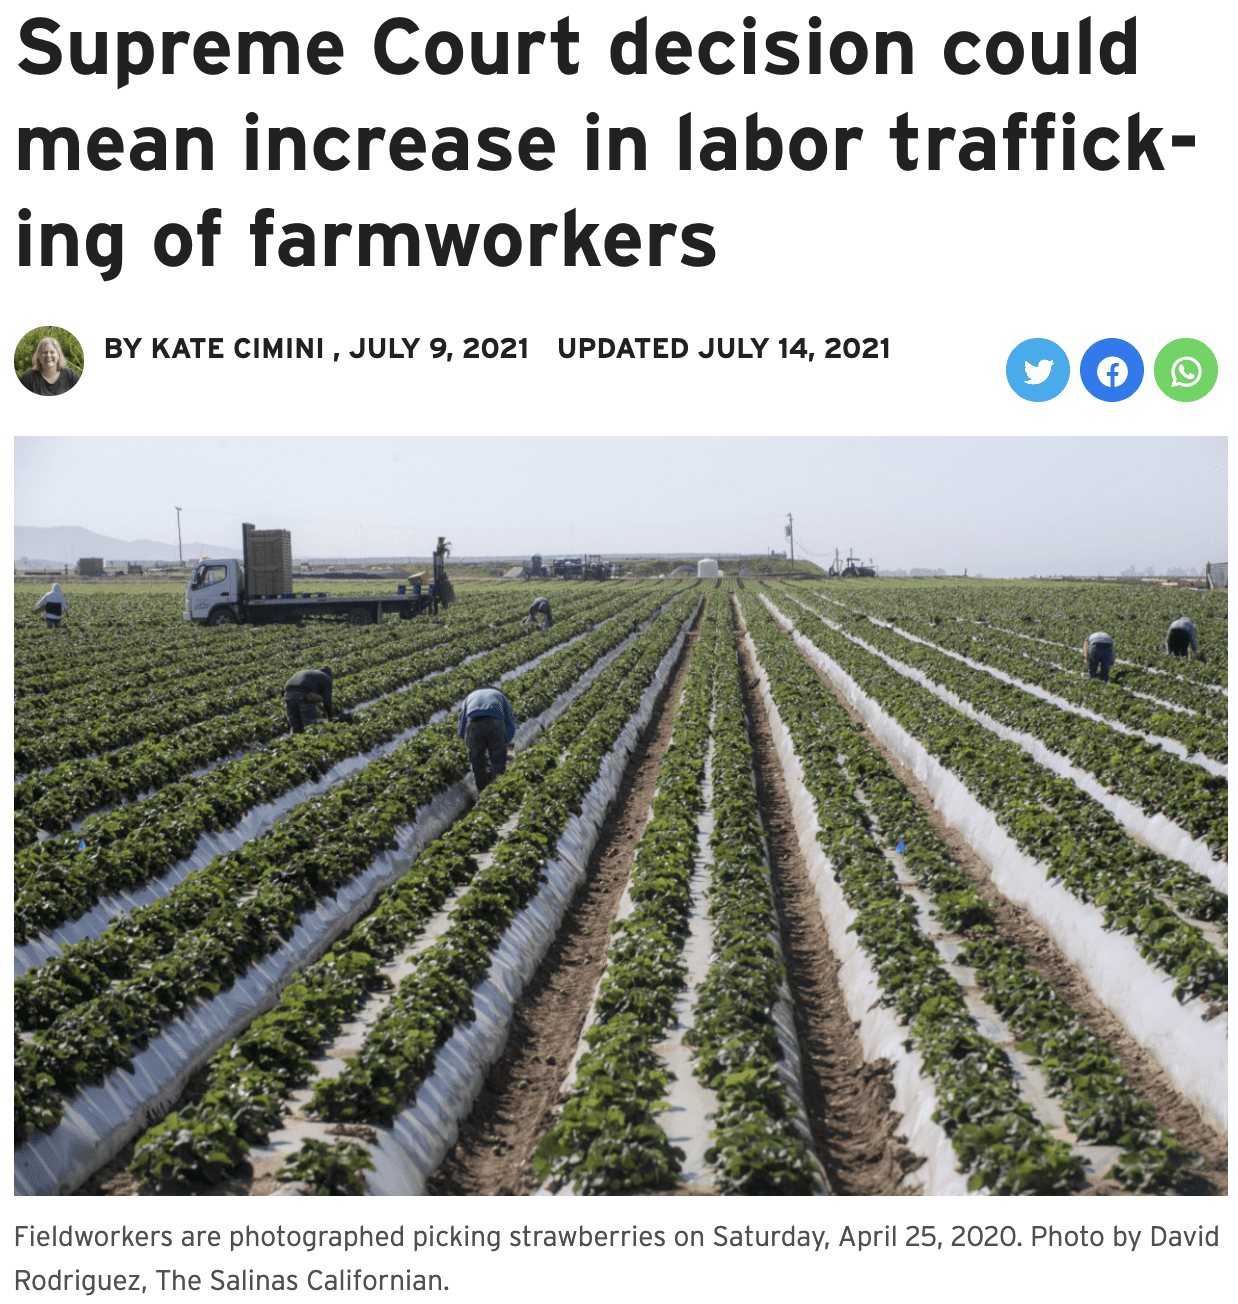 Supreme Court decision could mean increase in labor trafficking of farmworkers